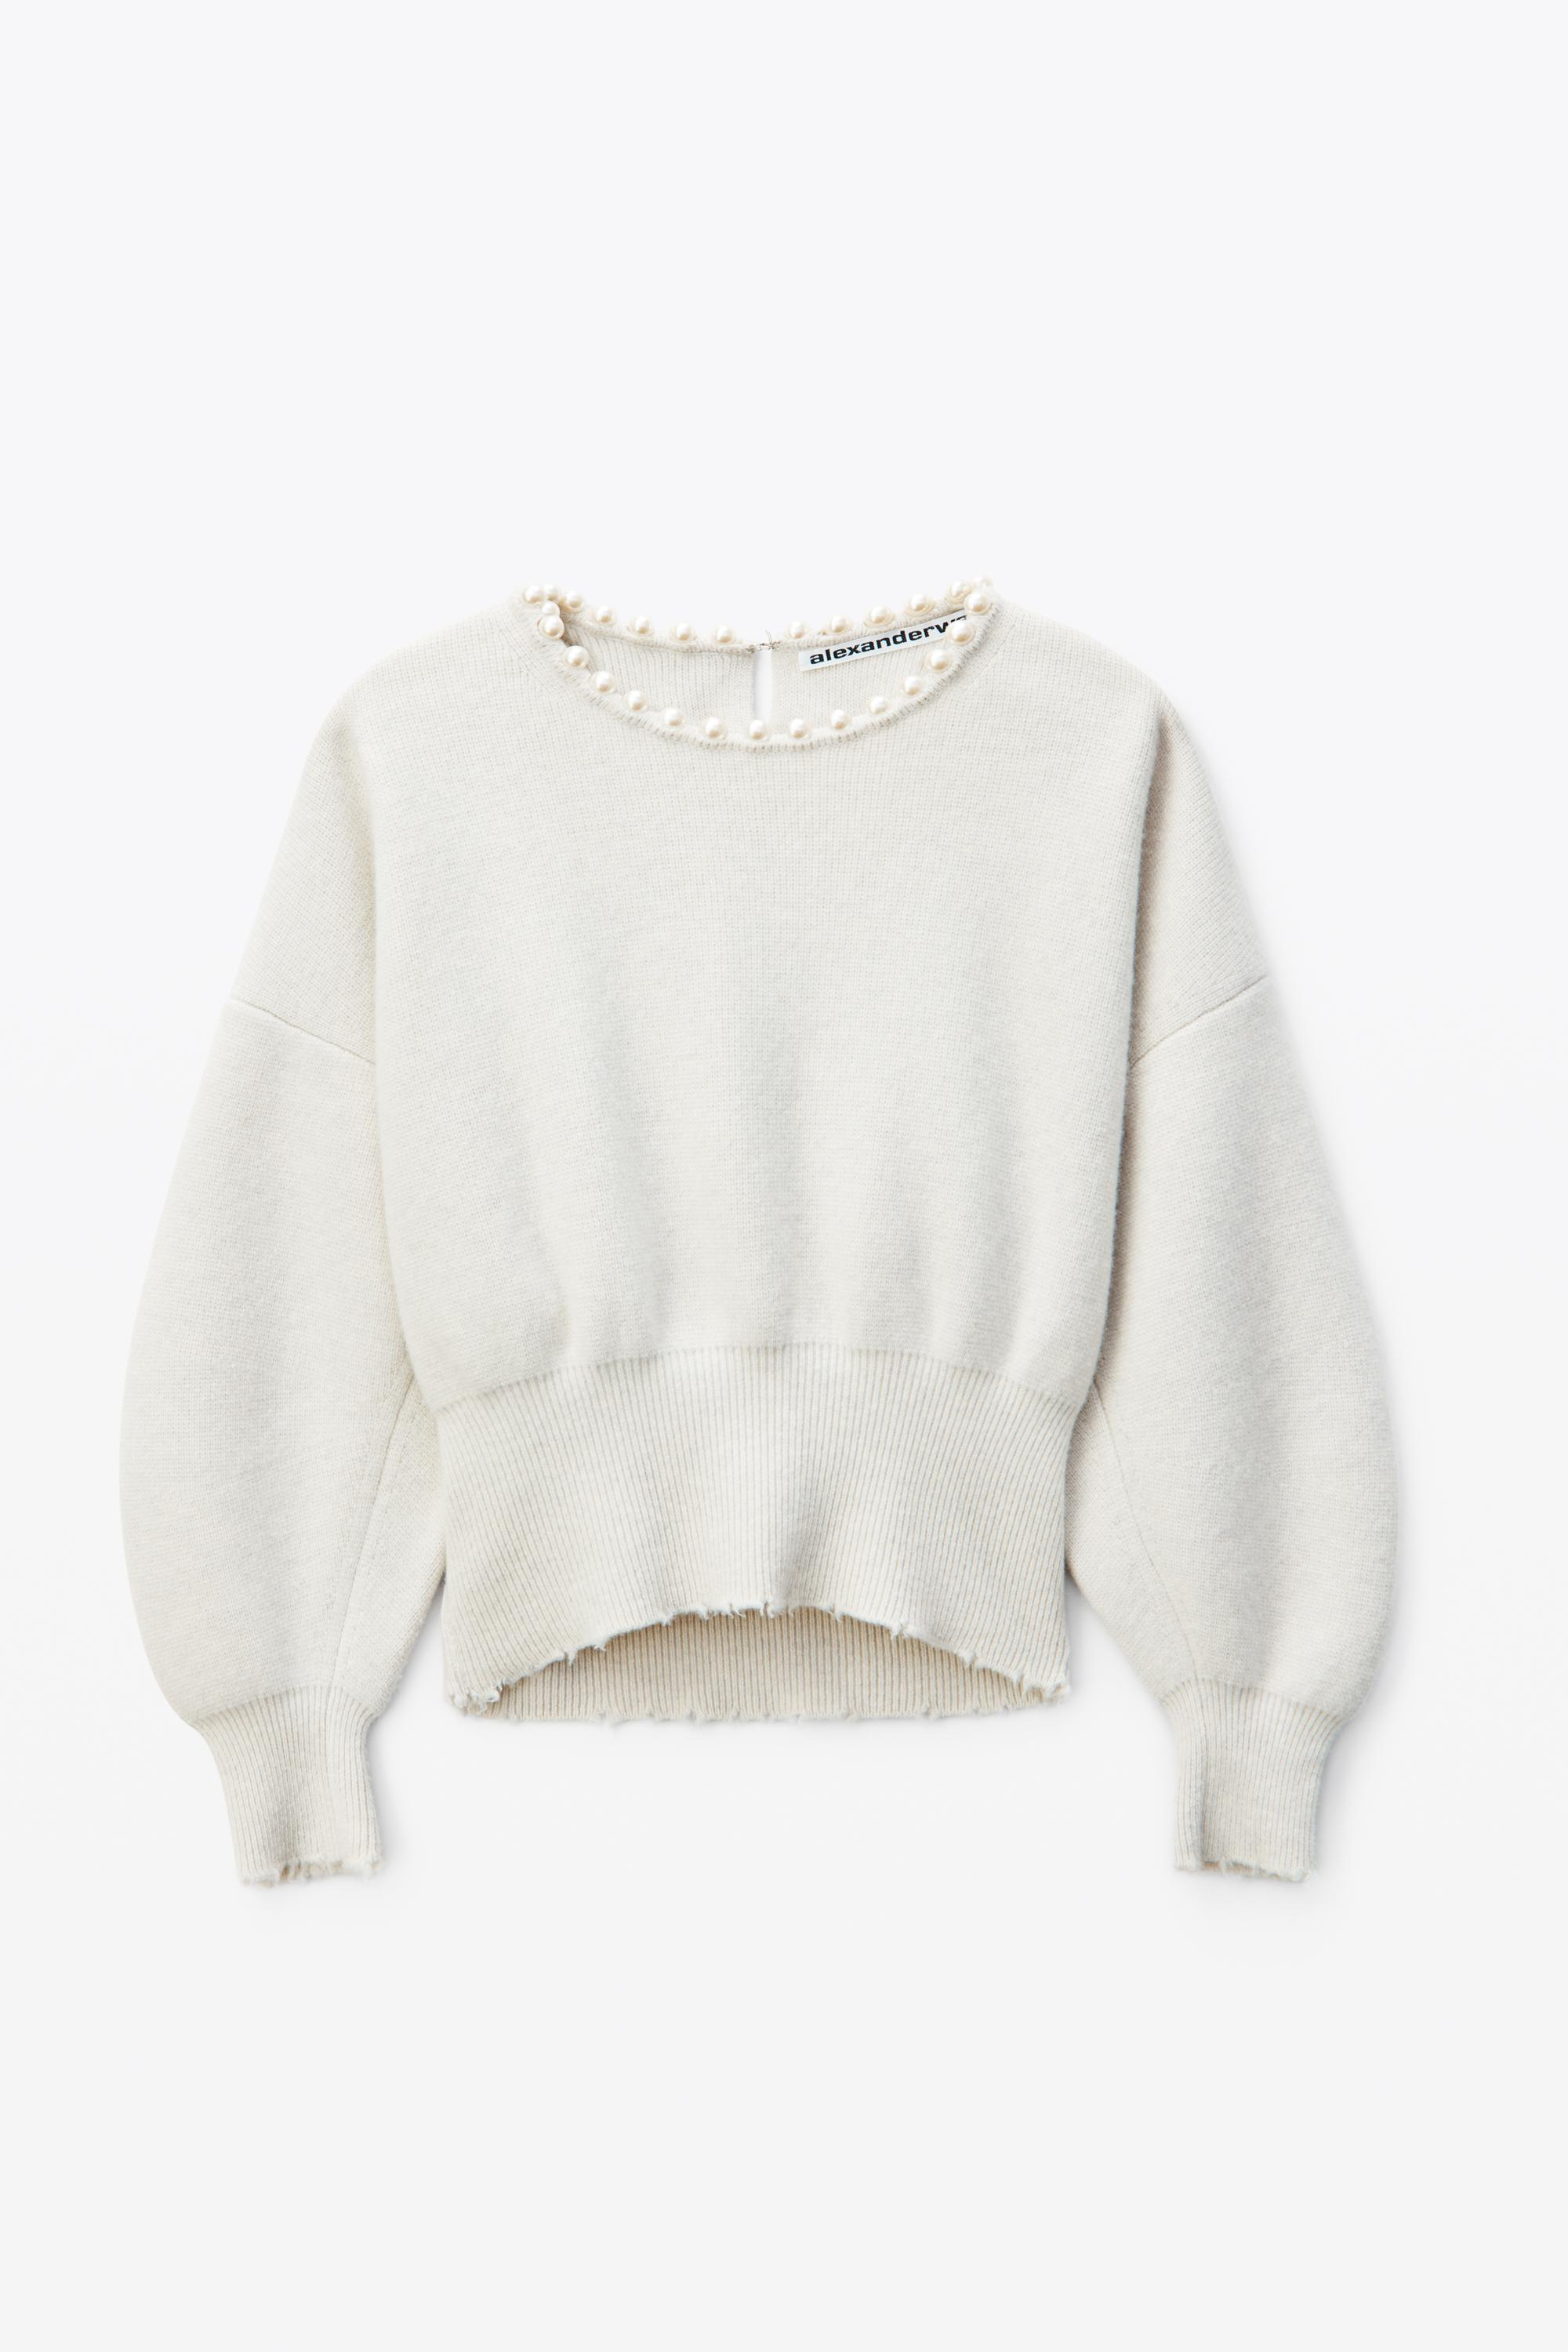 pearl necklace pullover 1